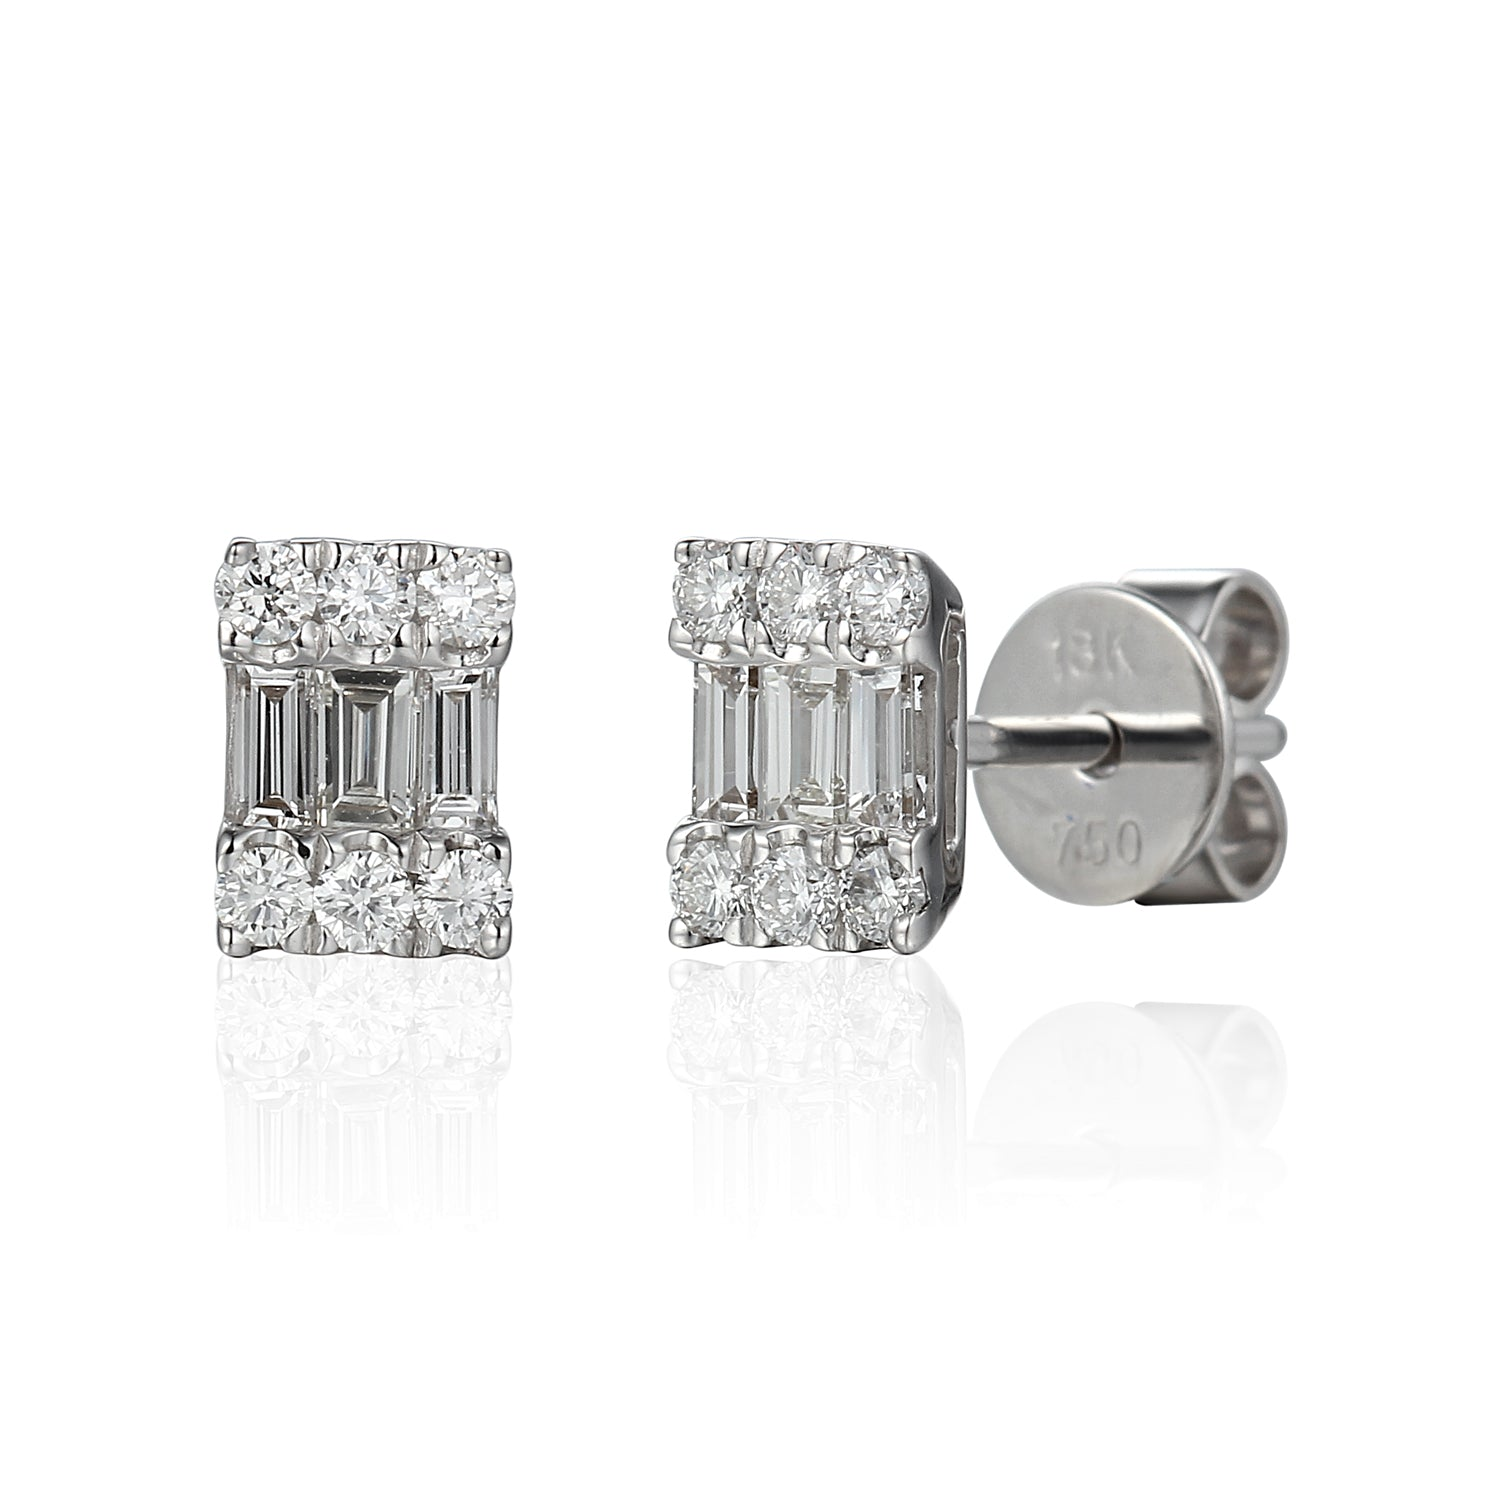 18ct White Gold Diamond Illusion set Baguette Earrings